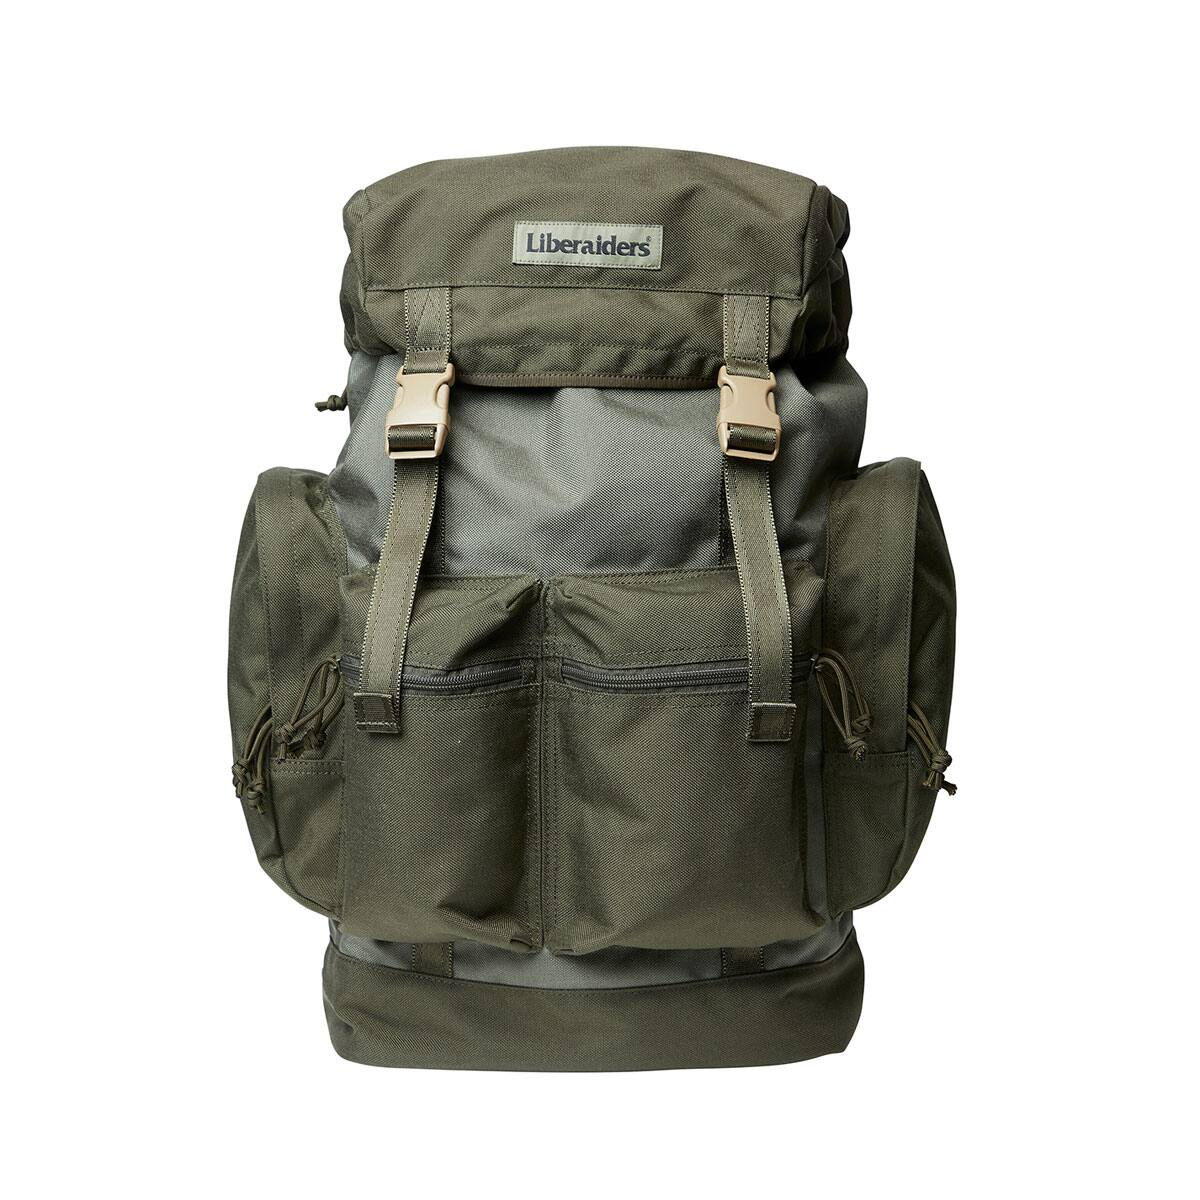 LIBERAIDERS TRAVELIN' SOLDIER BACKPACK OLIVE 20SP-I_photo_large